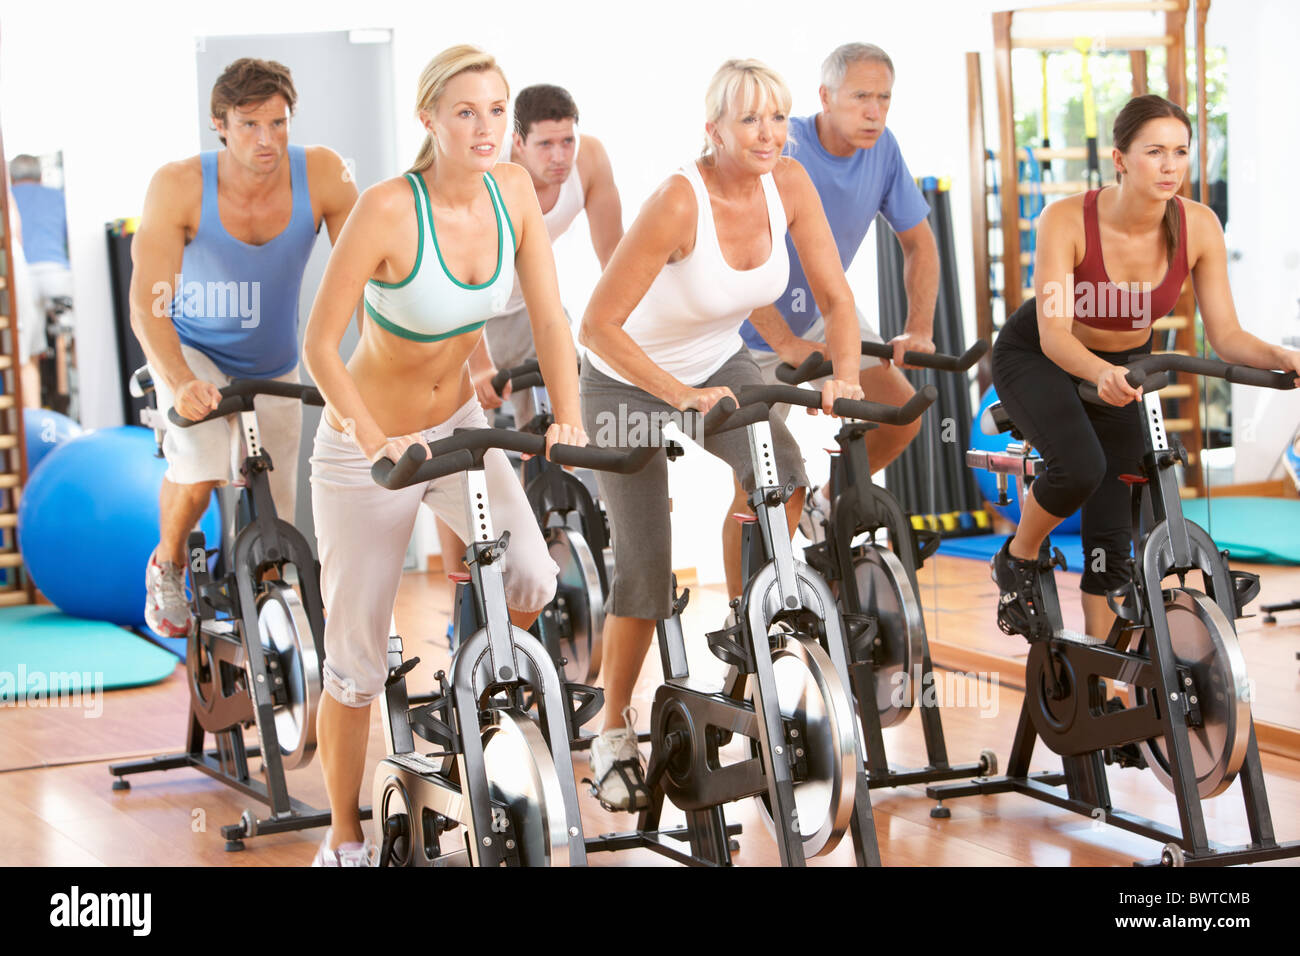 Group, People In Spinning Class In Gym - Stock Image